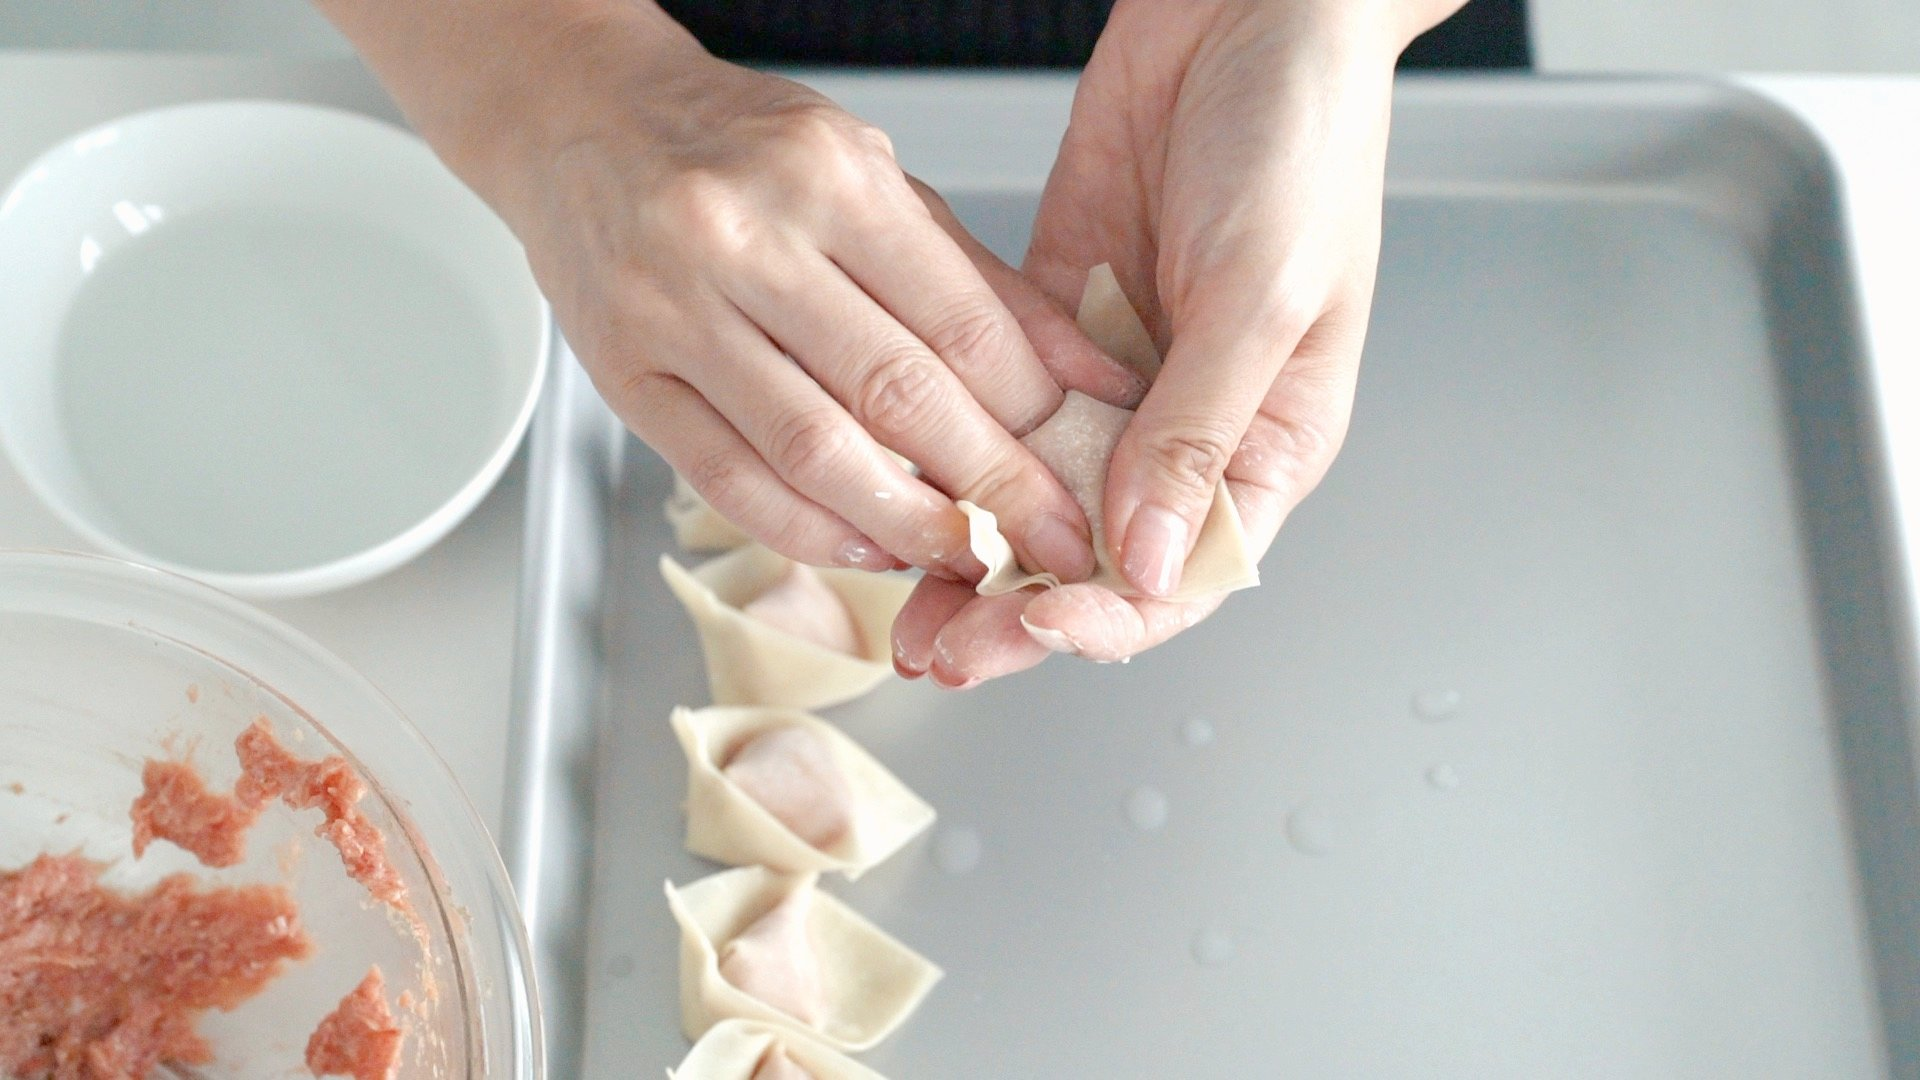 Sealing the wonton shut.